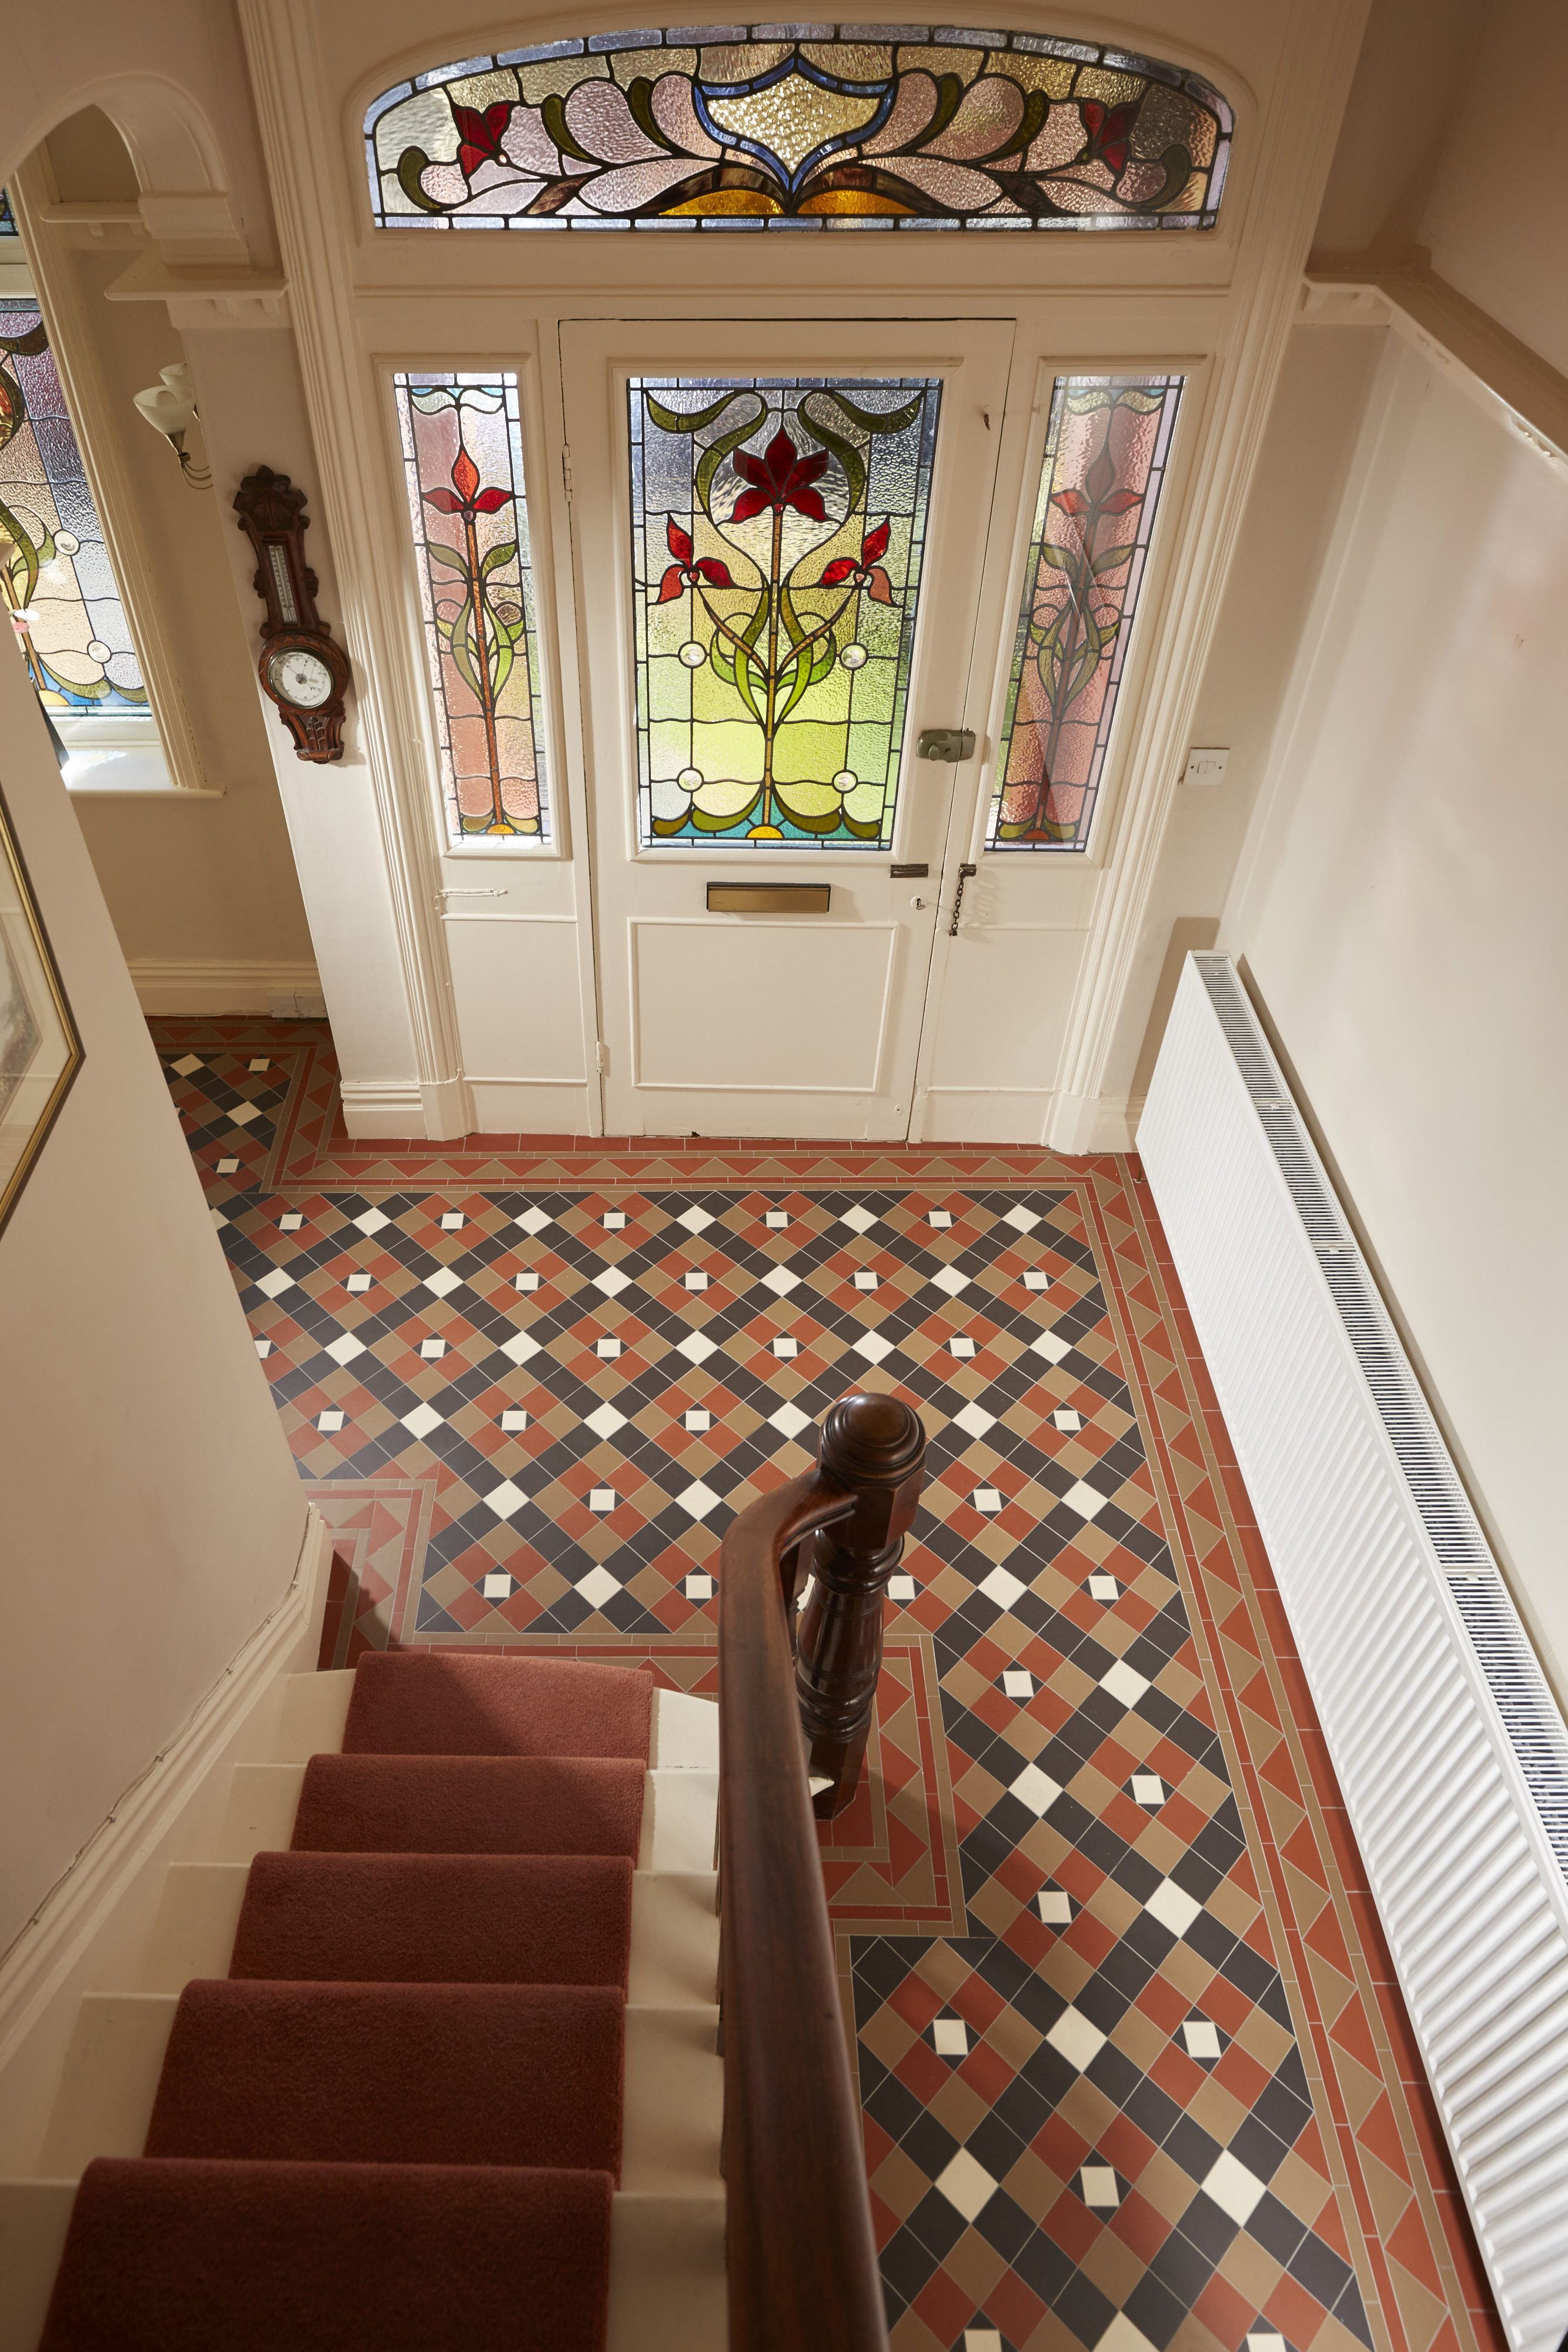 The richmond pattern victorian floor tiles by original style uk geometric tile patterns victorian floor tiles dailygadgetfo Images